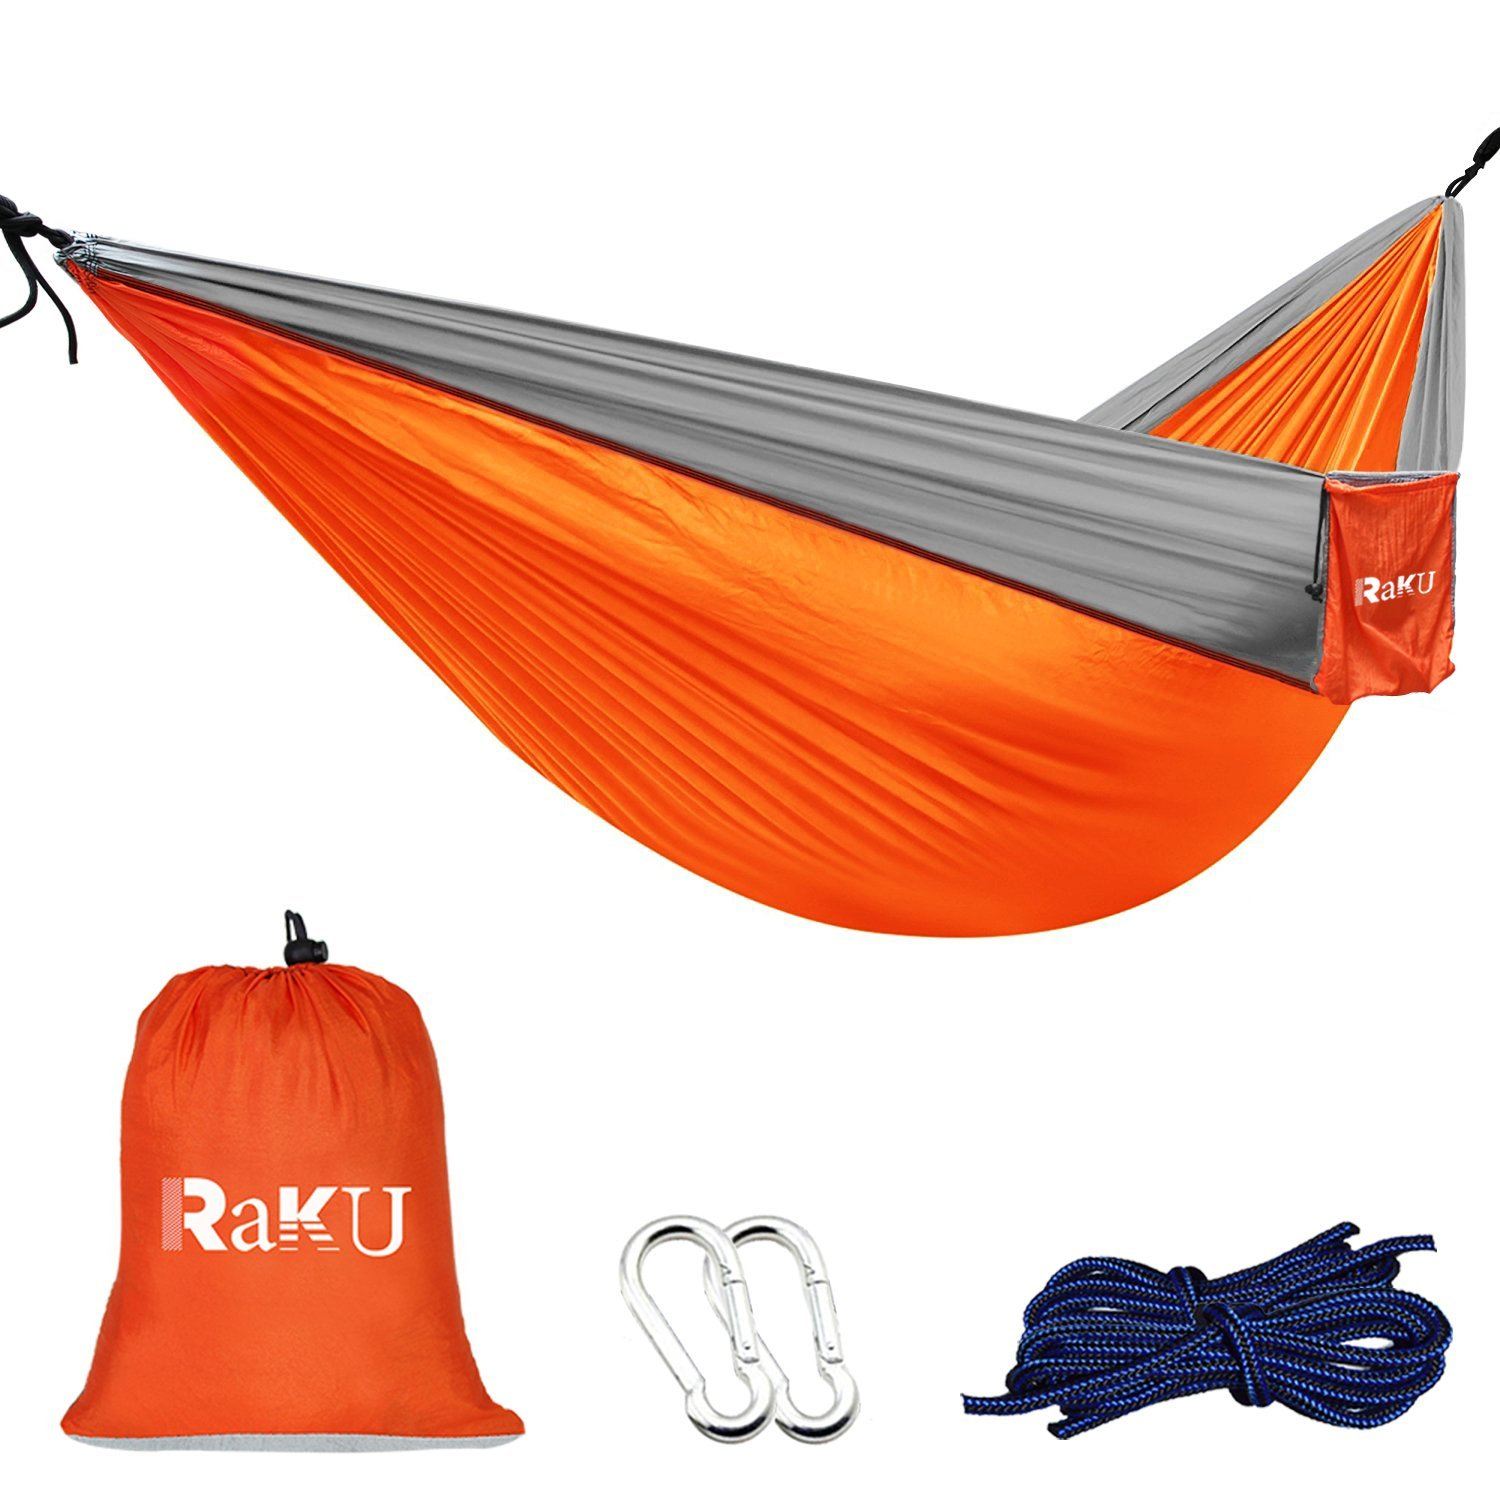 Amazon Highly Rated Raku Camping Hammock For Only 10 36